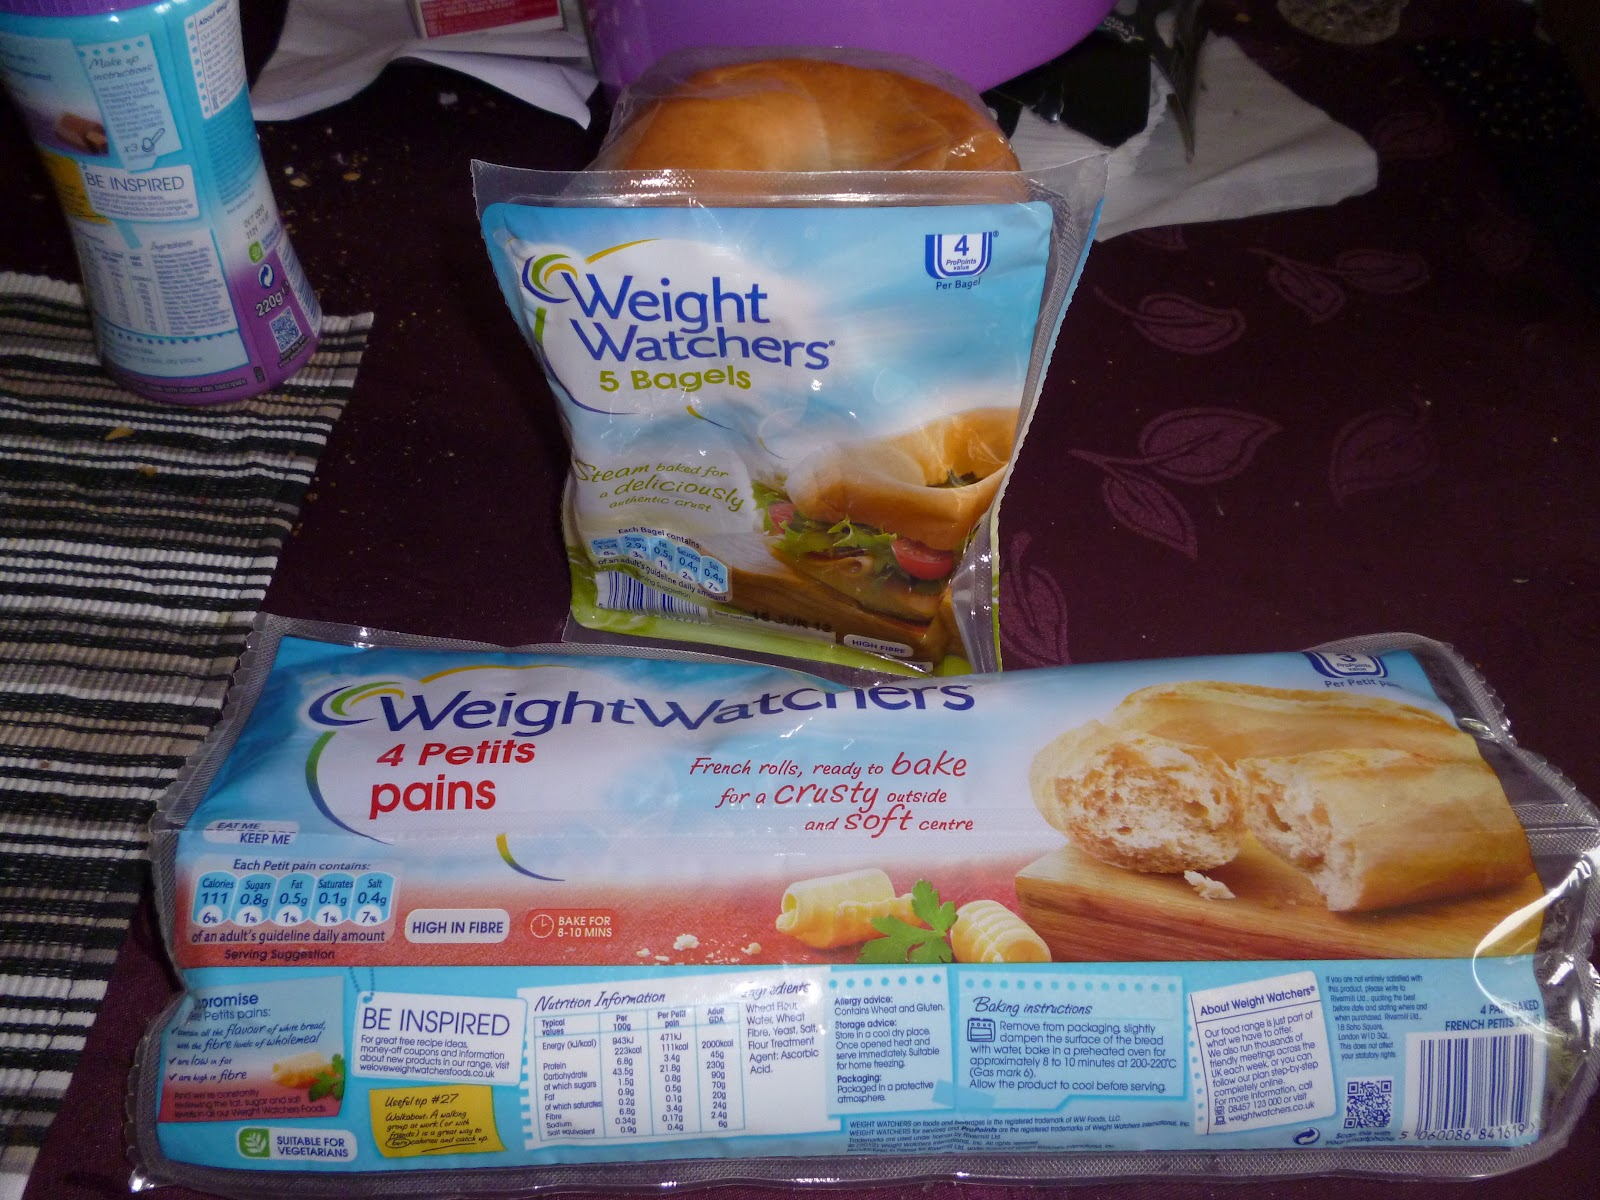 Weight Watchers Chocolate Cake Recipes Uk: Madhouse Family Reviews: Wow, Look At What Was In This